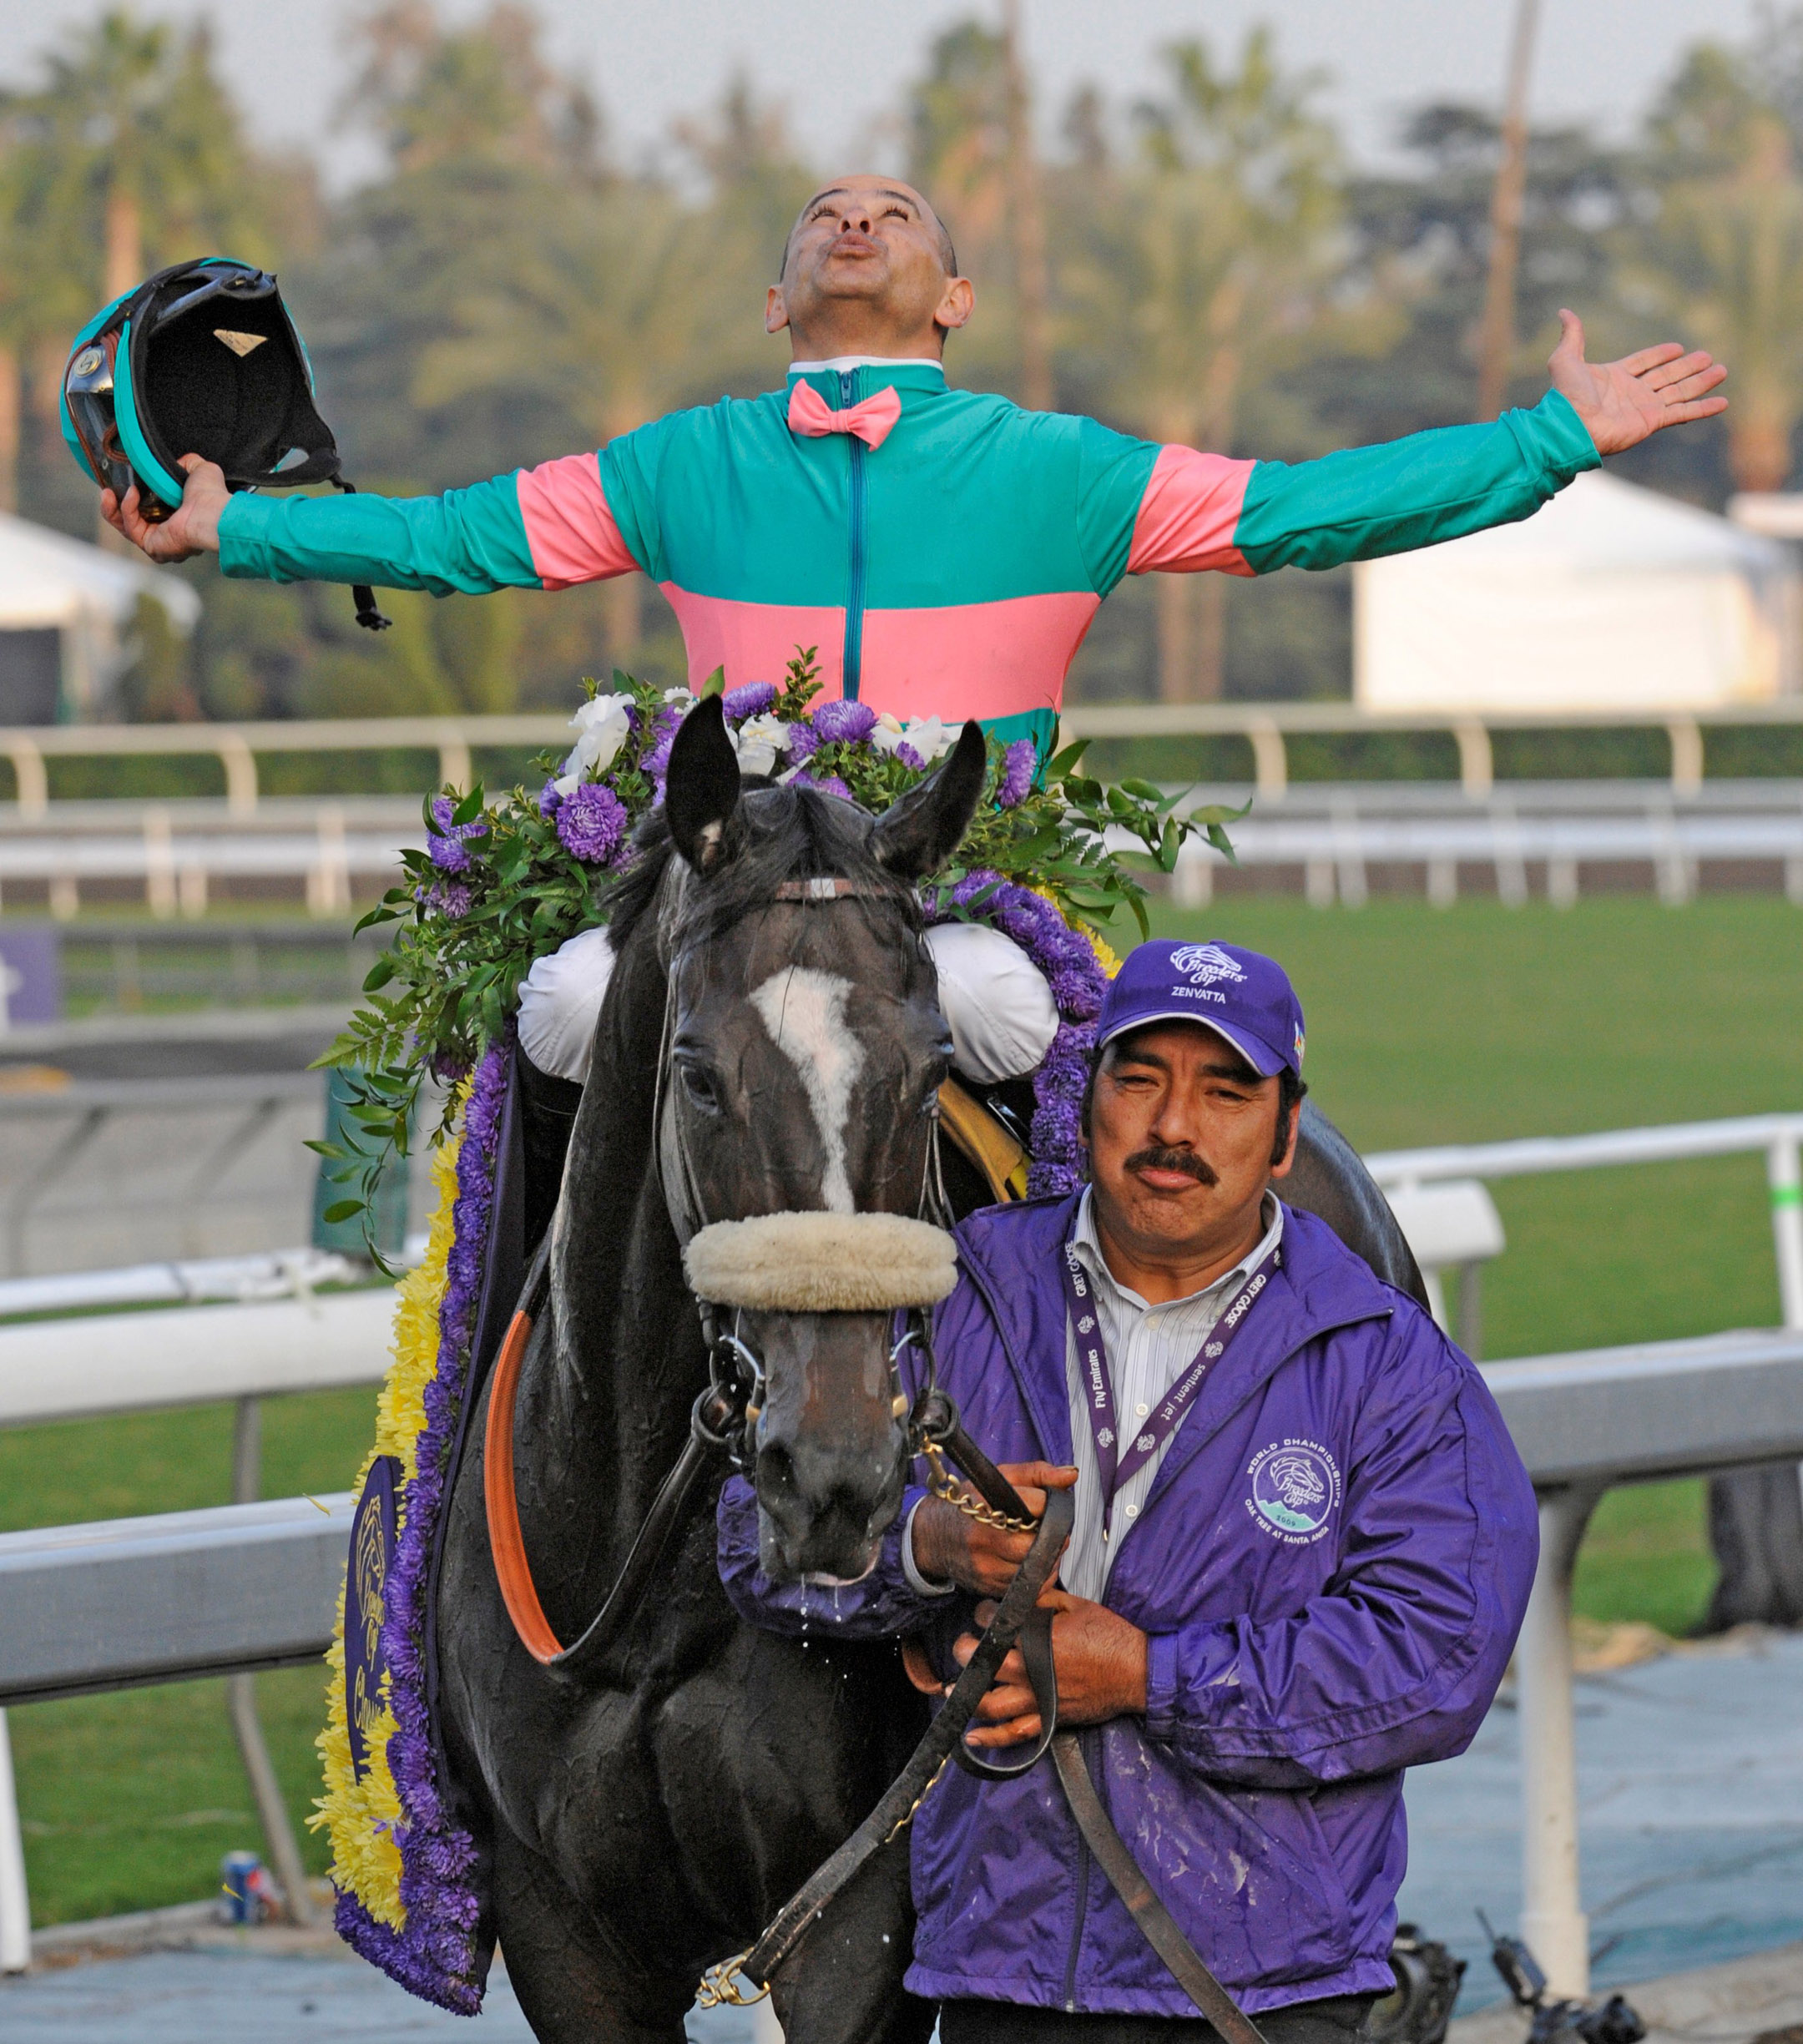 Mike Smith and Zenyatta after winning the 2009 Breeders' Cup Classic at Santa Anita (Skip Dickstein)